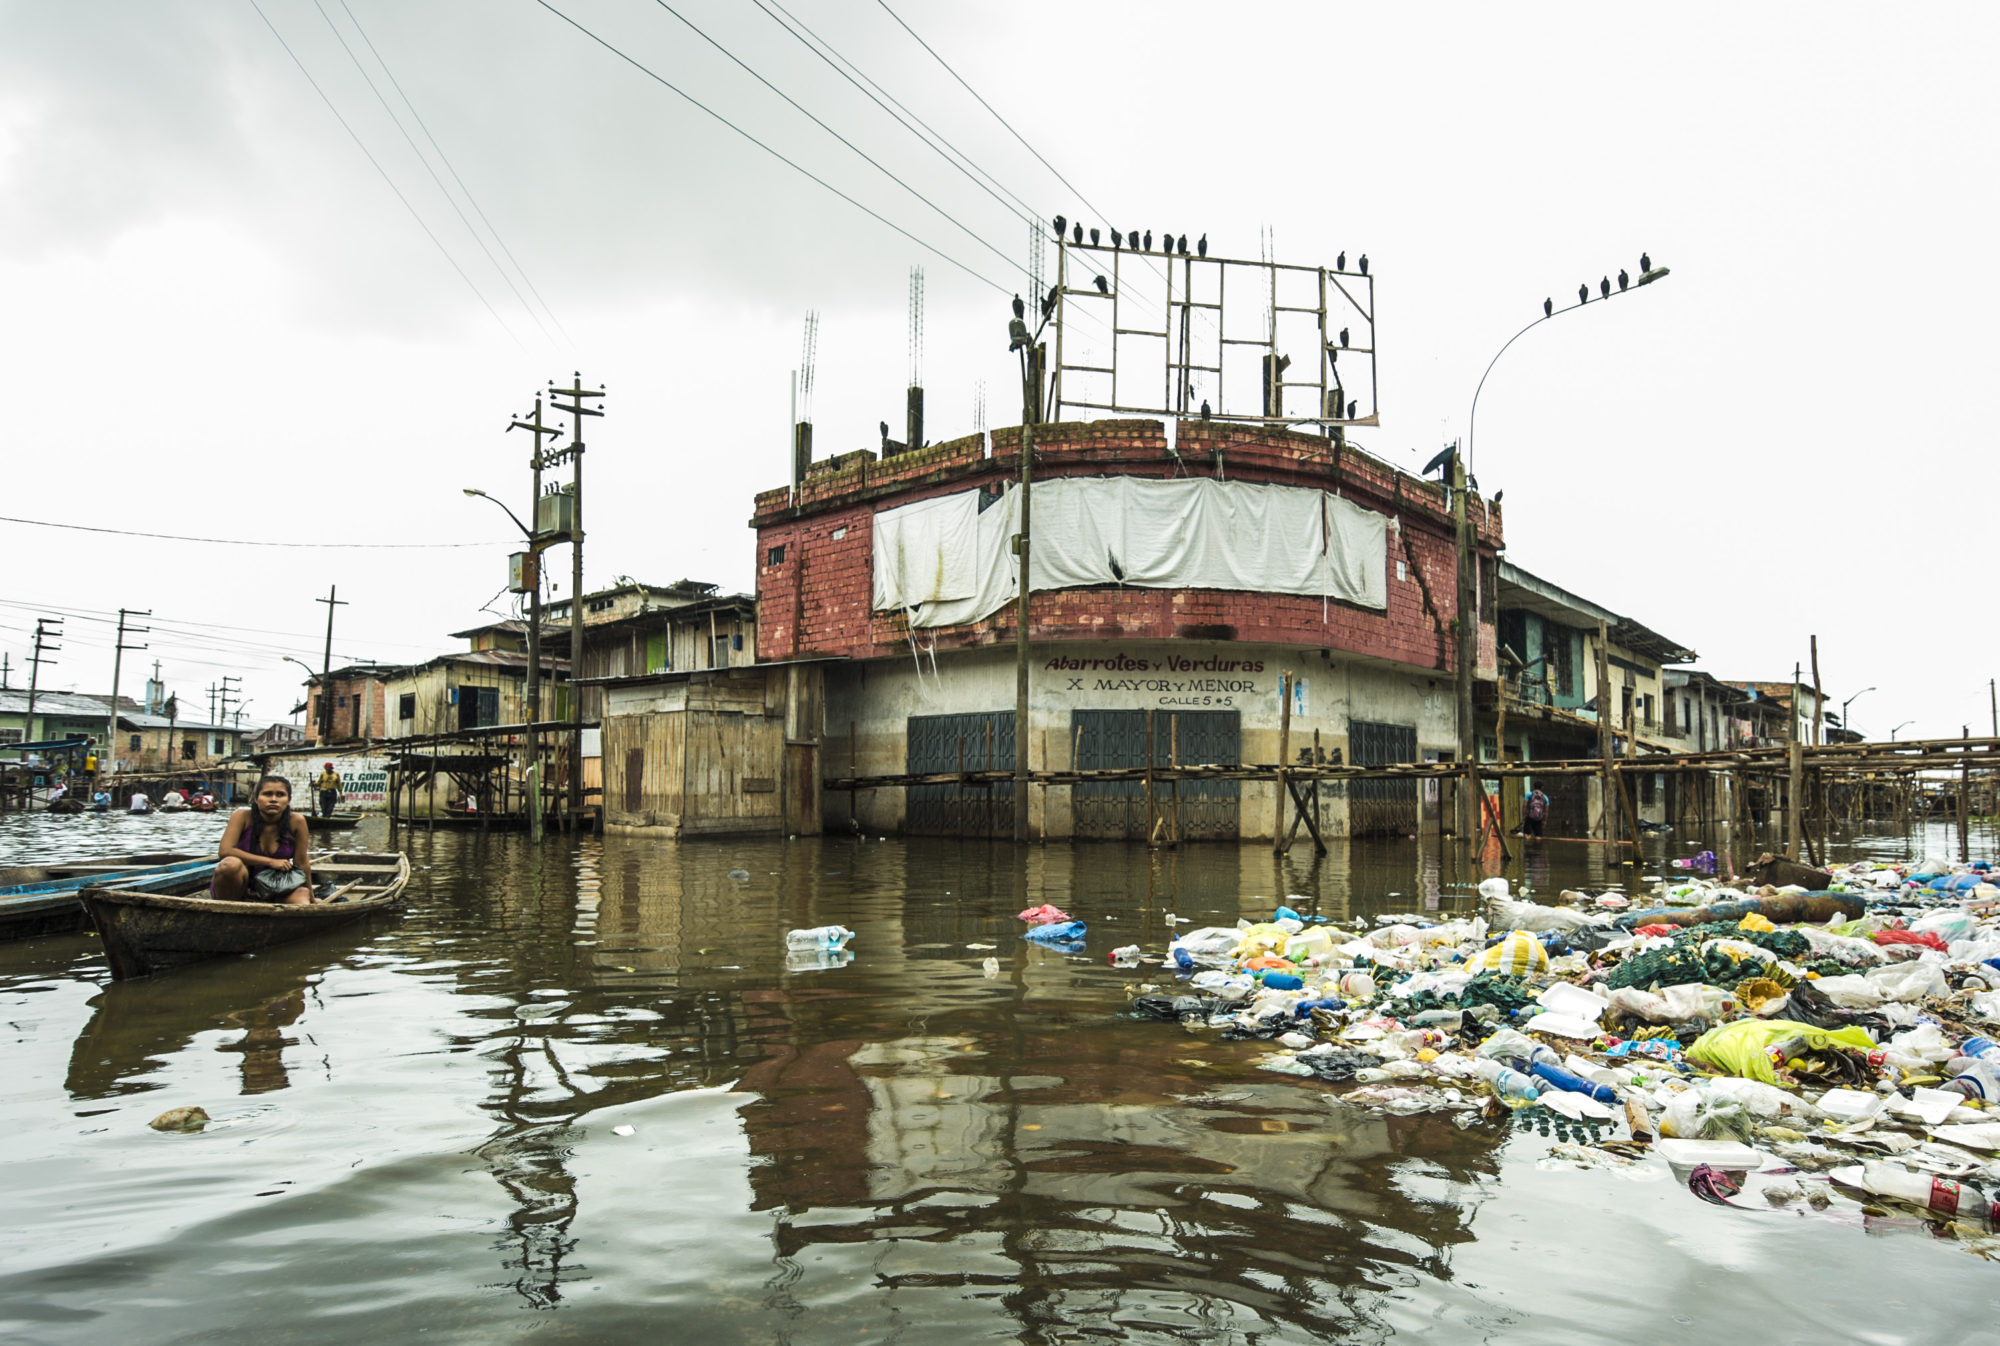 Elizabeth Streeter, 'RAW South America - Iquitos Floating Village' (2019) (1)